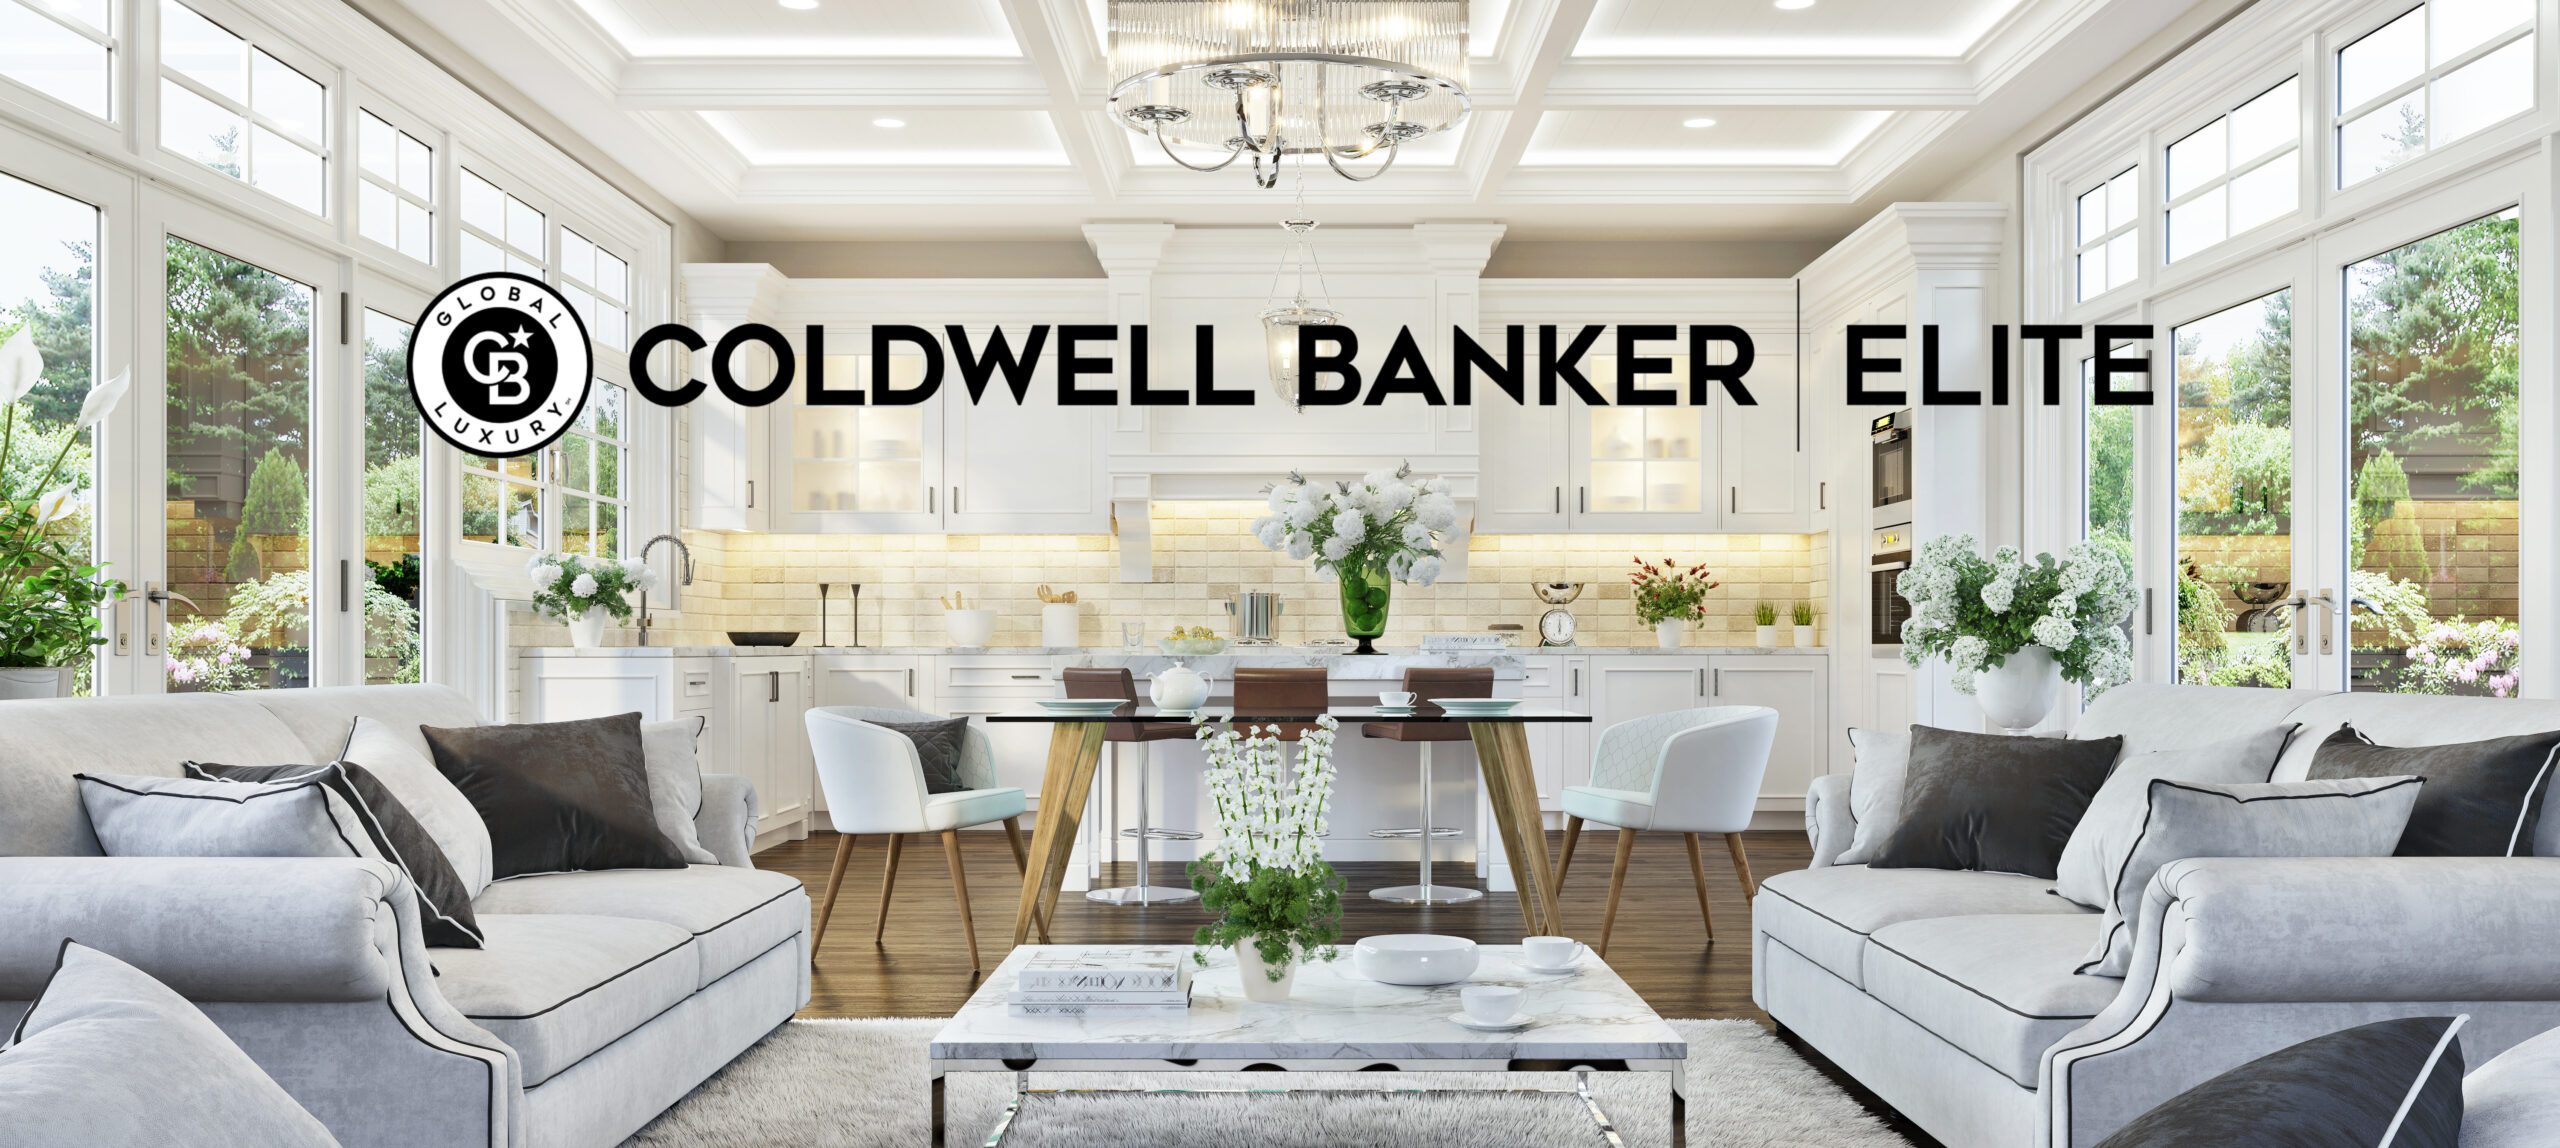 global luxury coldwell banker elite